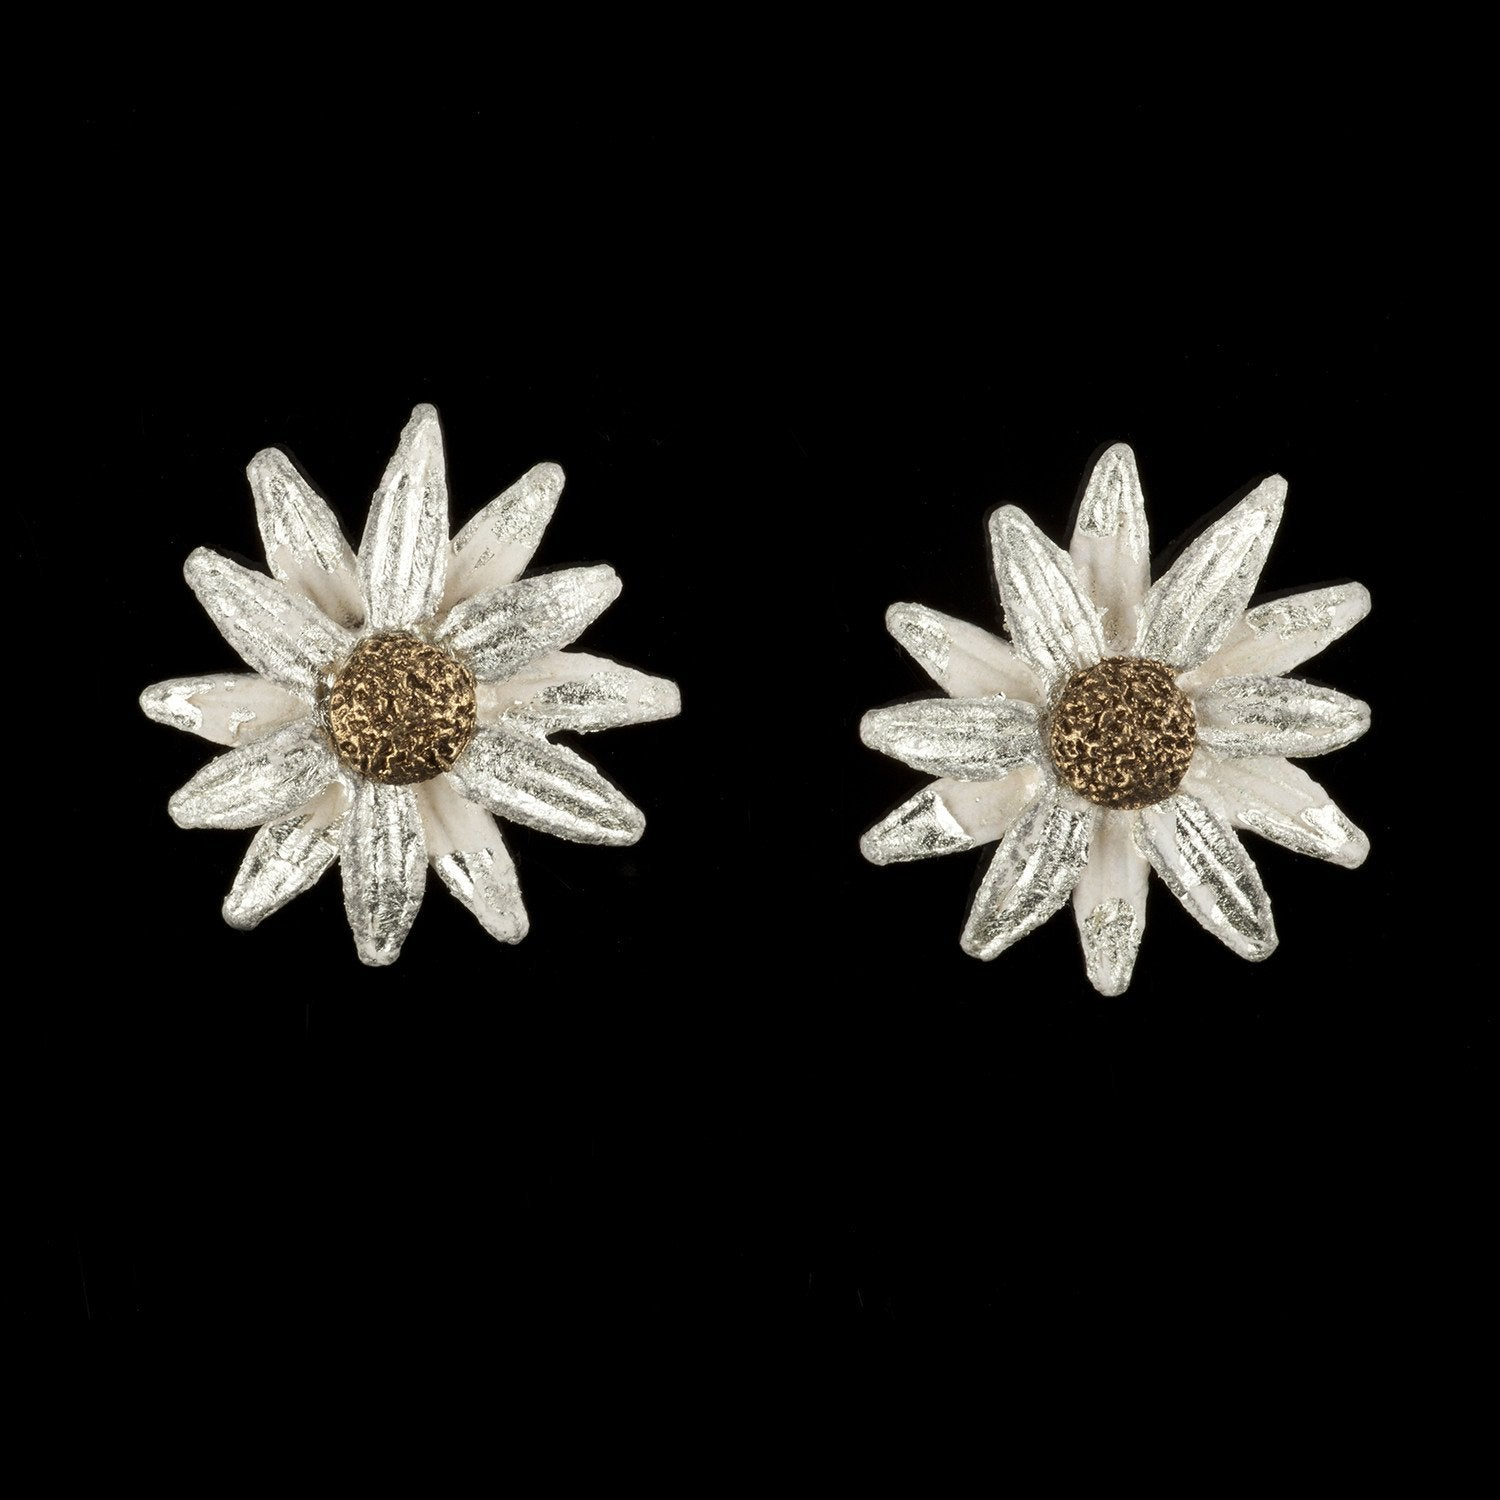 Daisy Earrings - Clip